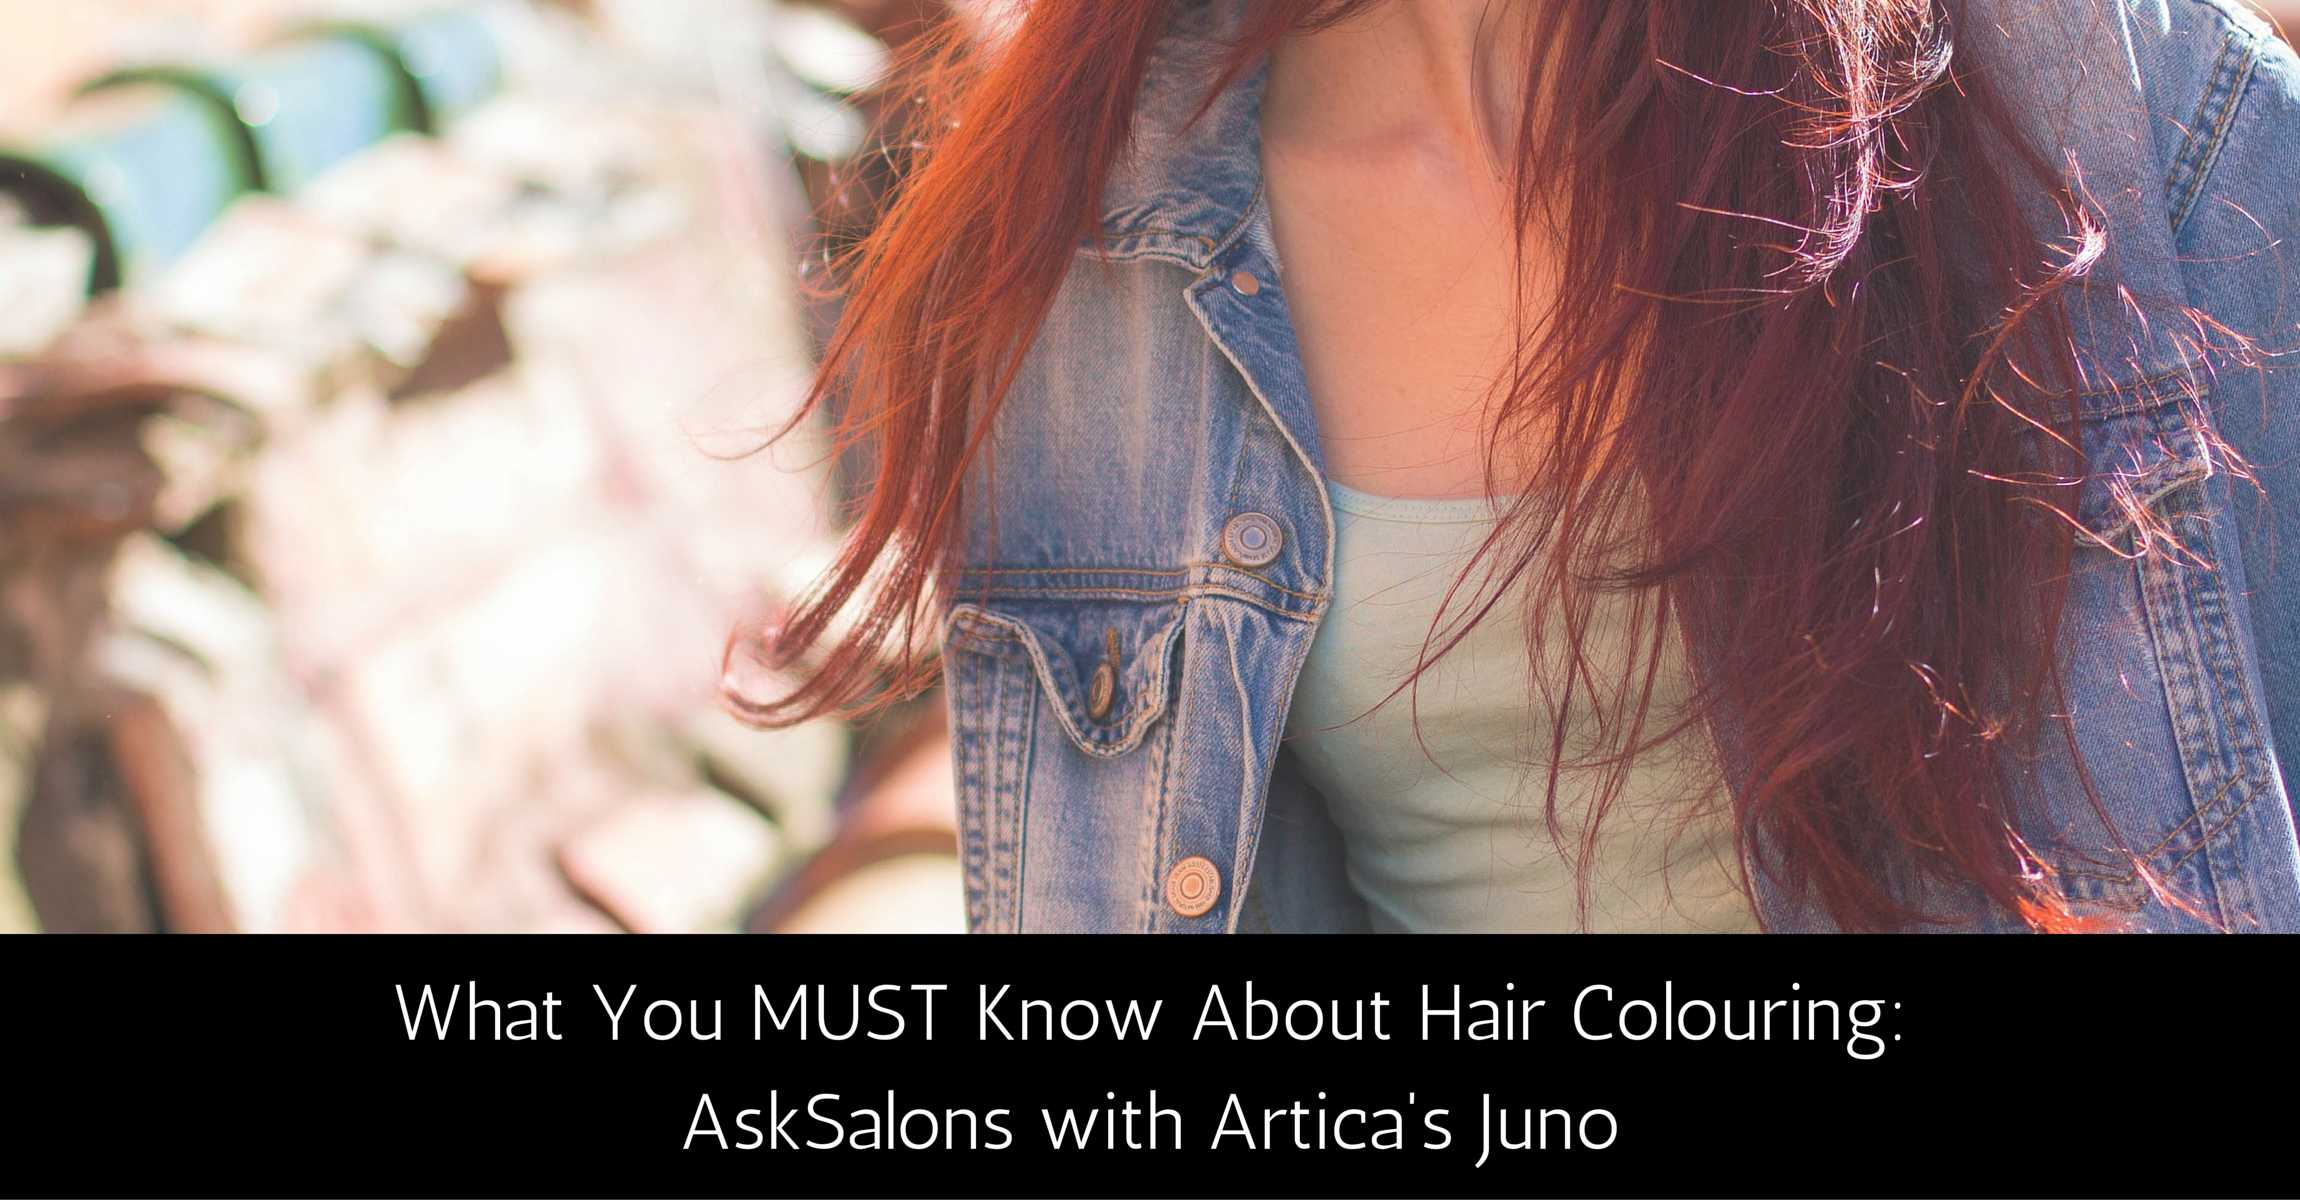 What You MUST Know About Hair Colouring Answers From